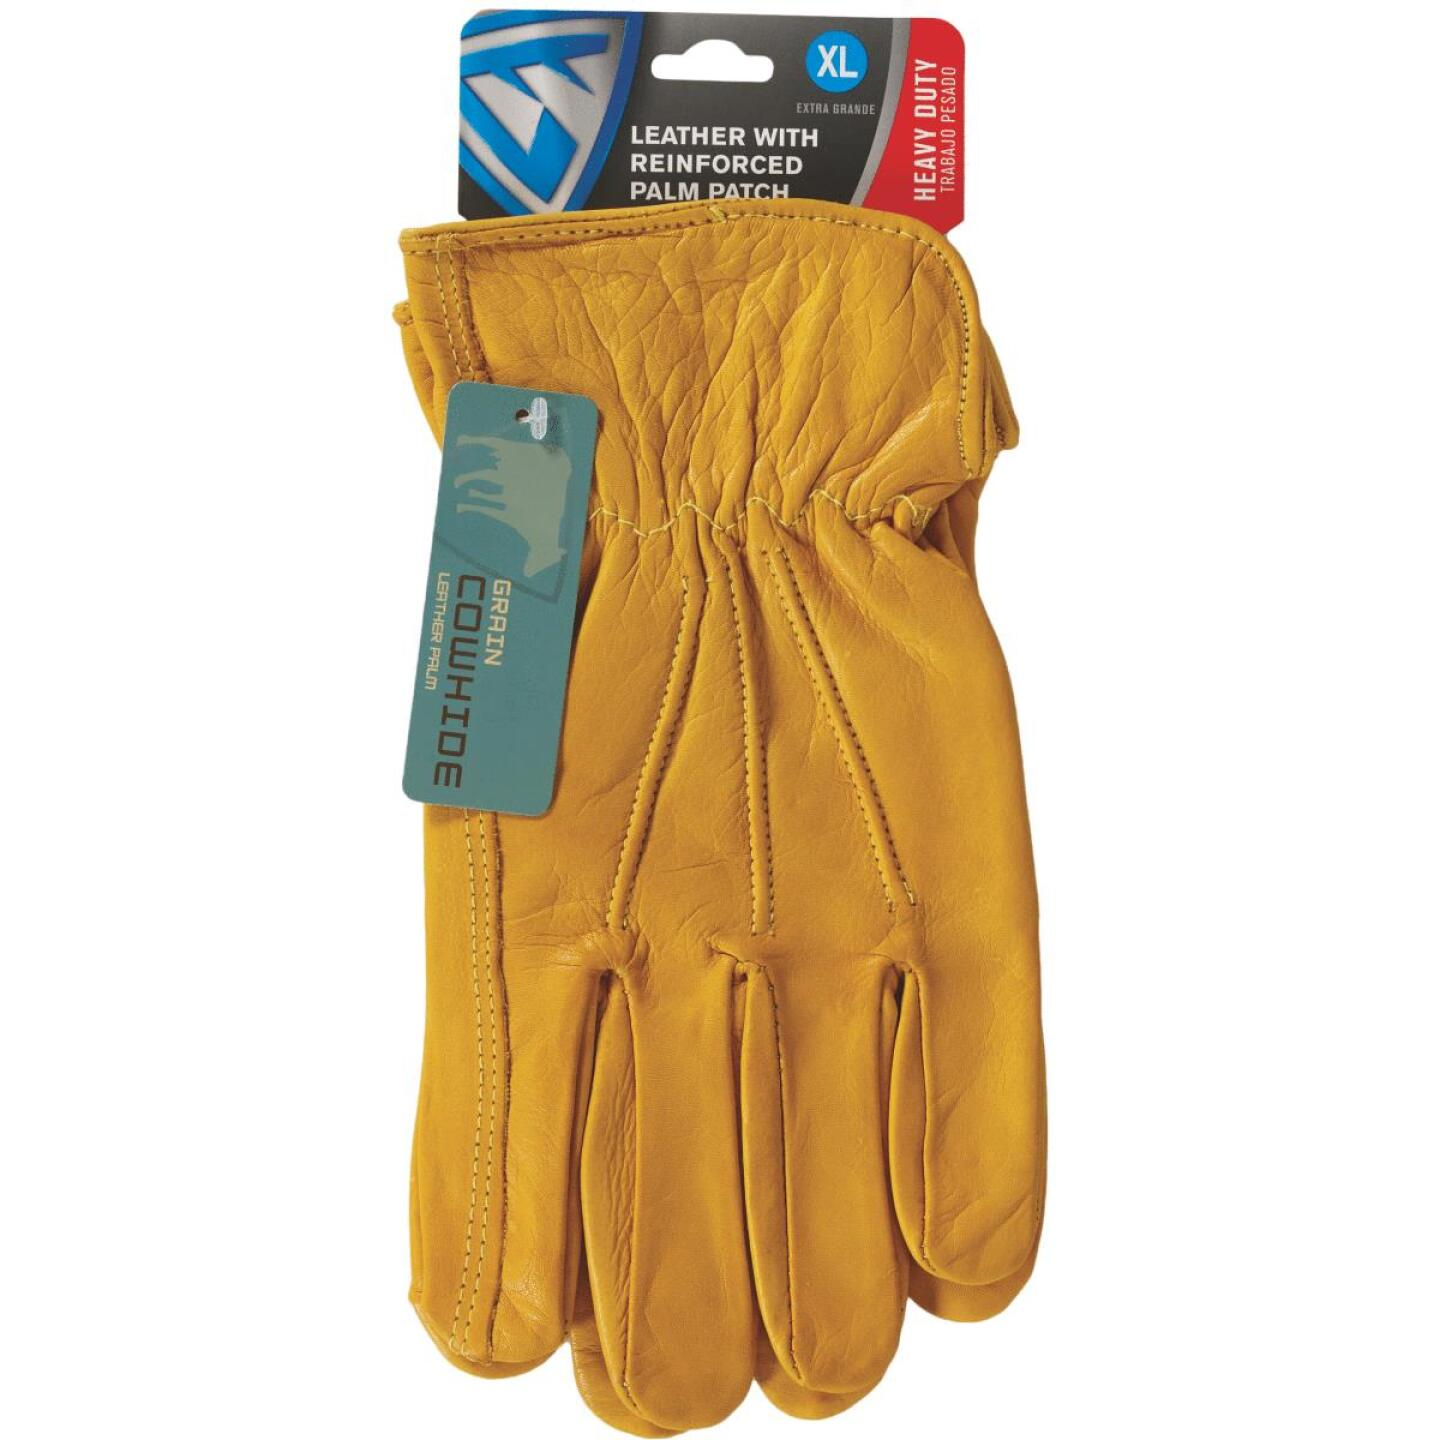 West Chester Protective Gear Men's XL Grain Cowhide Leather Work Glove Image 3